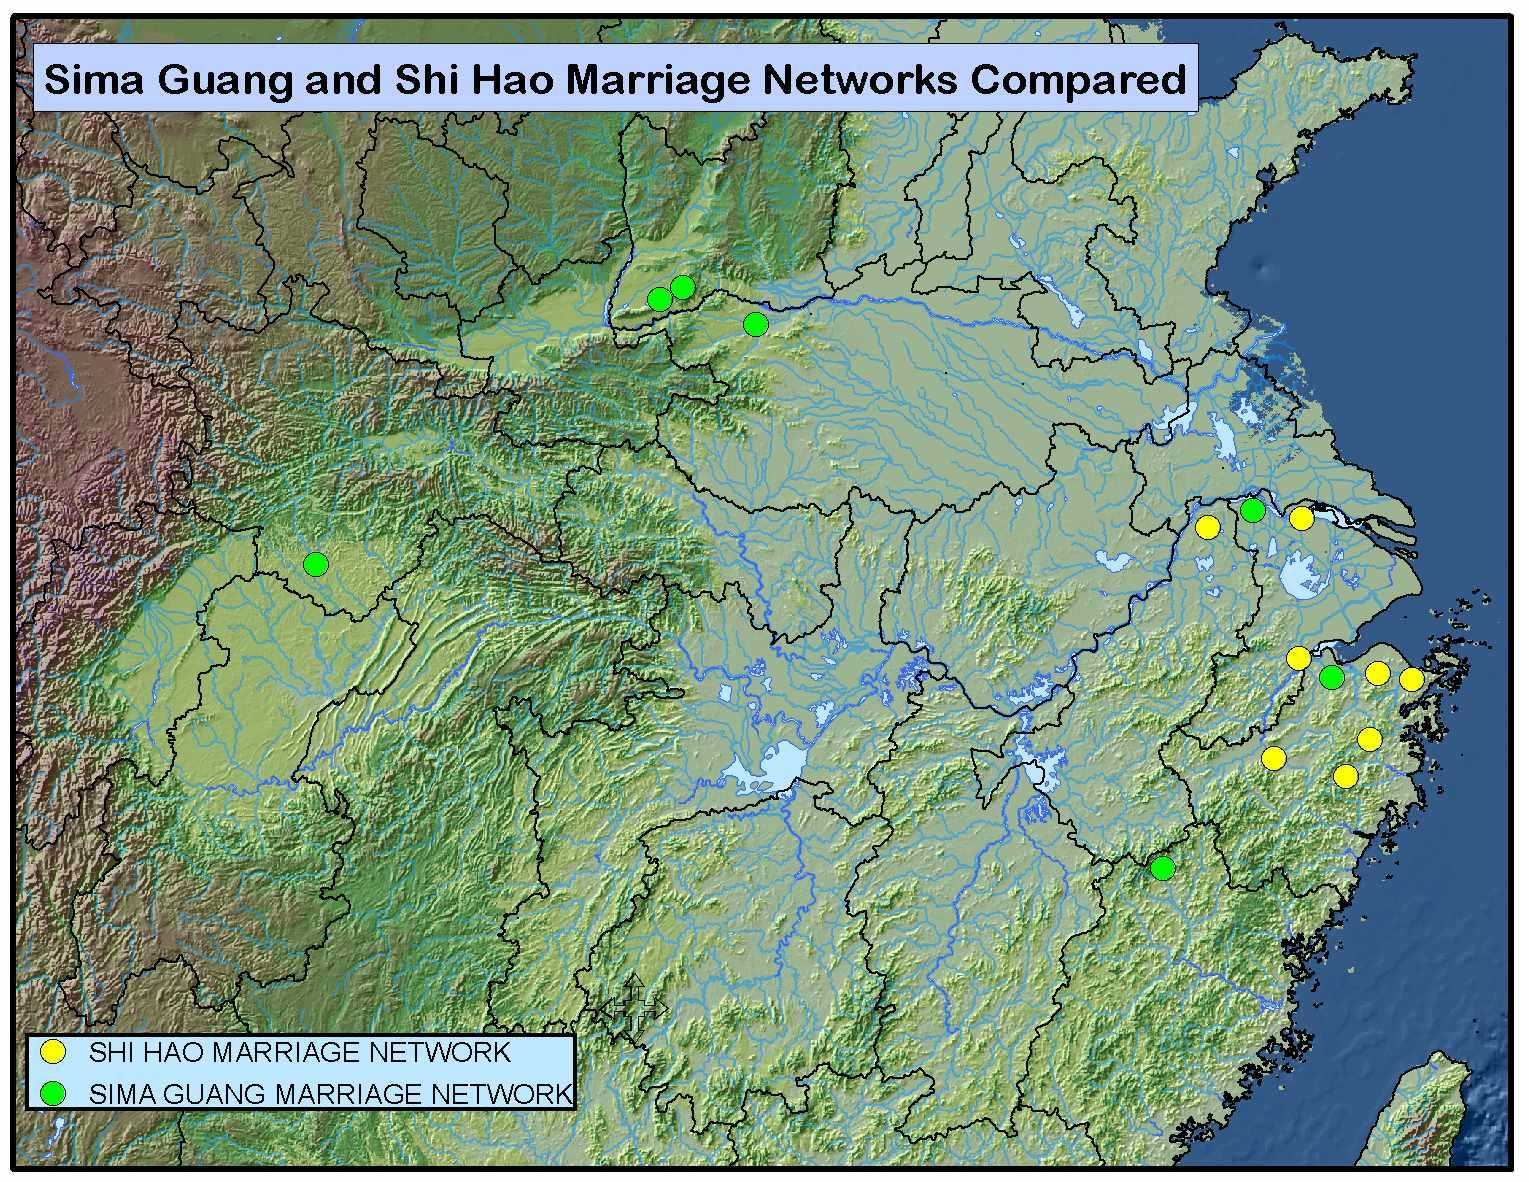 Spatial extent of the marriage networks of the Northern Song statesman Sima Guang and the Southern Song statesman Shi Hao.